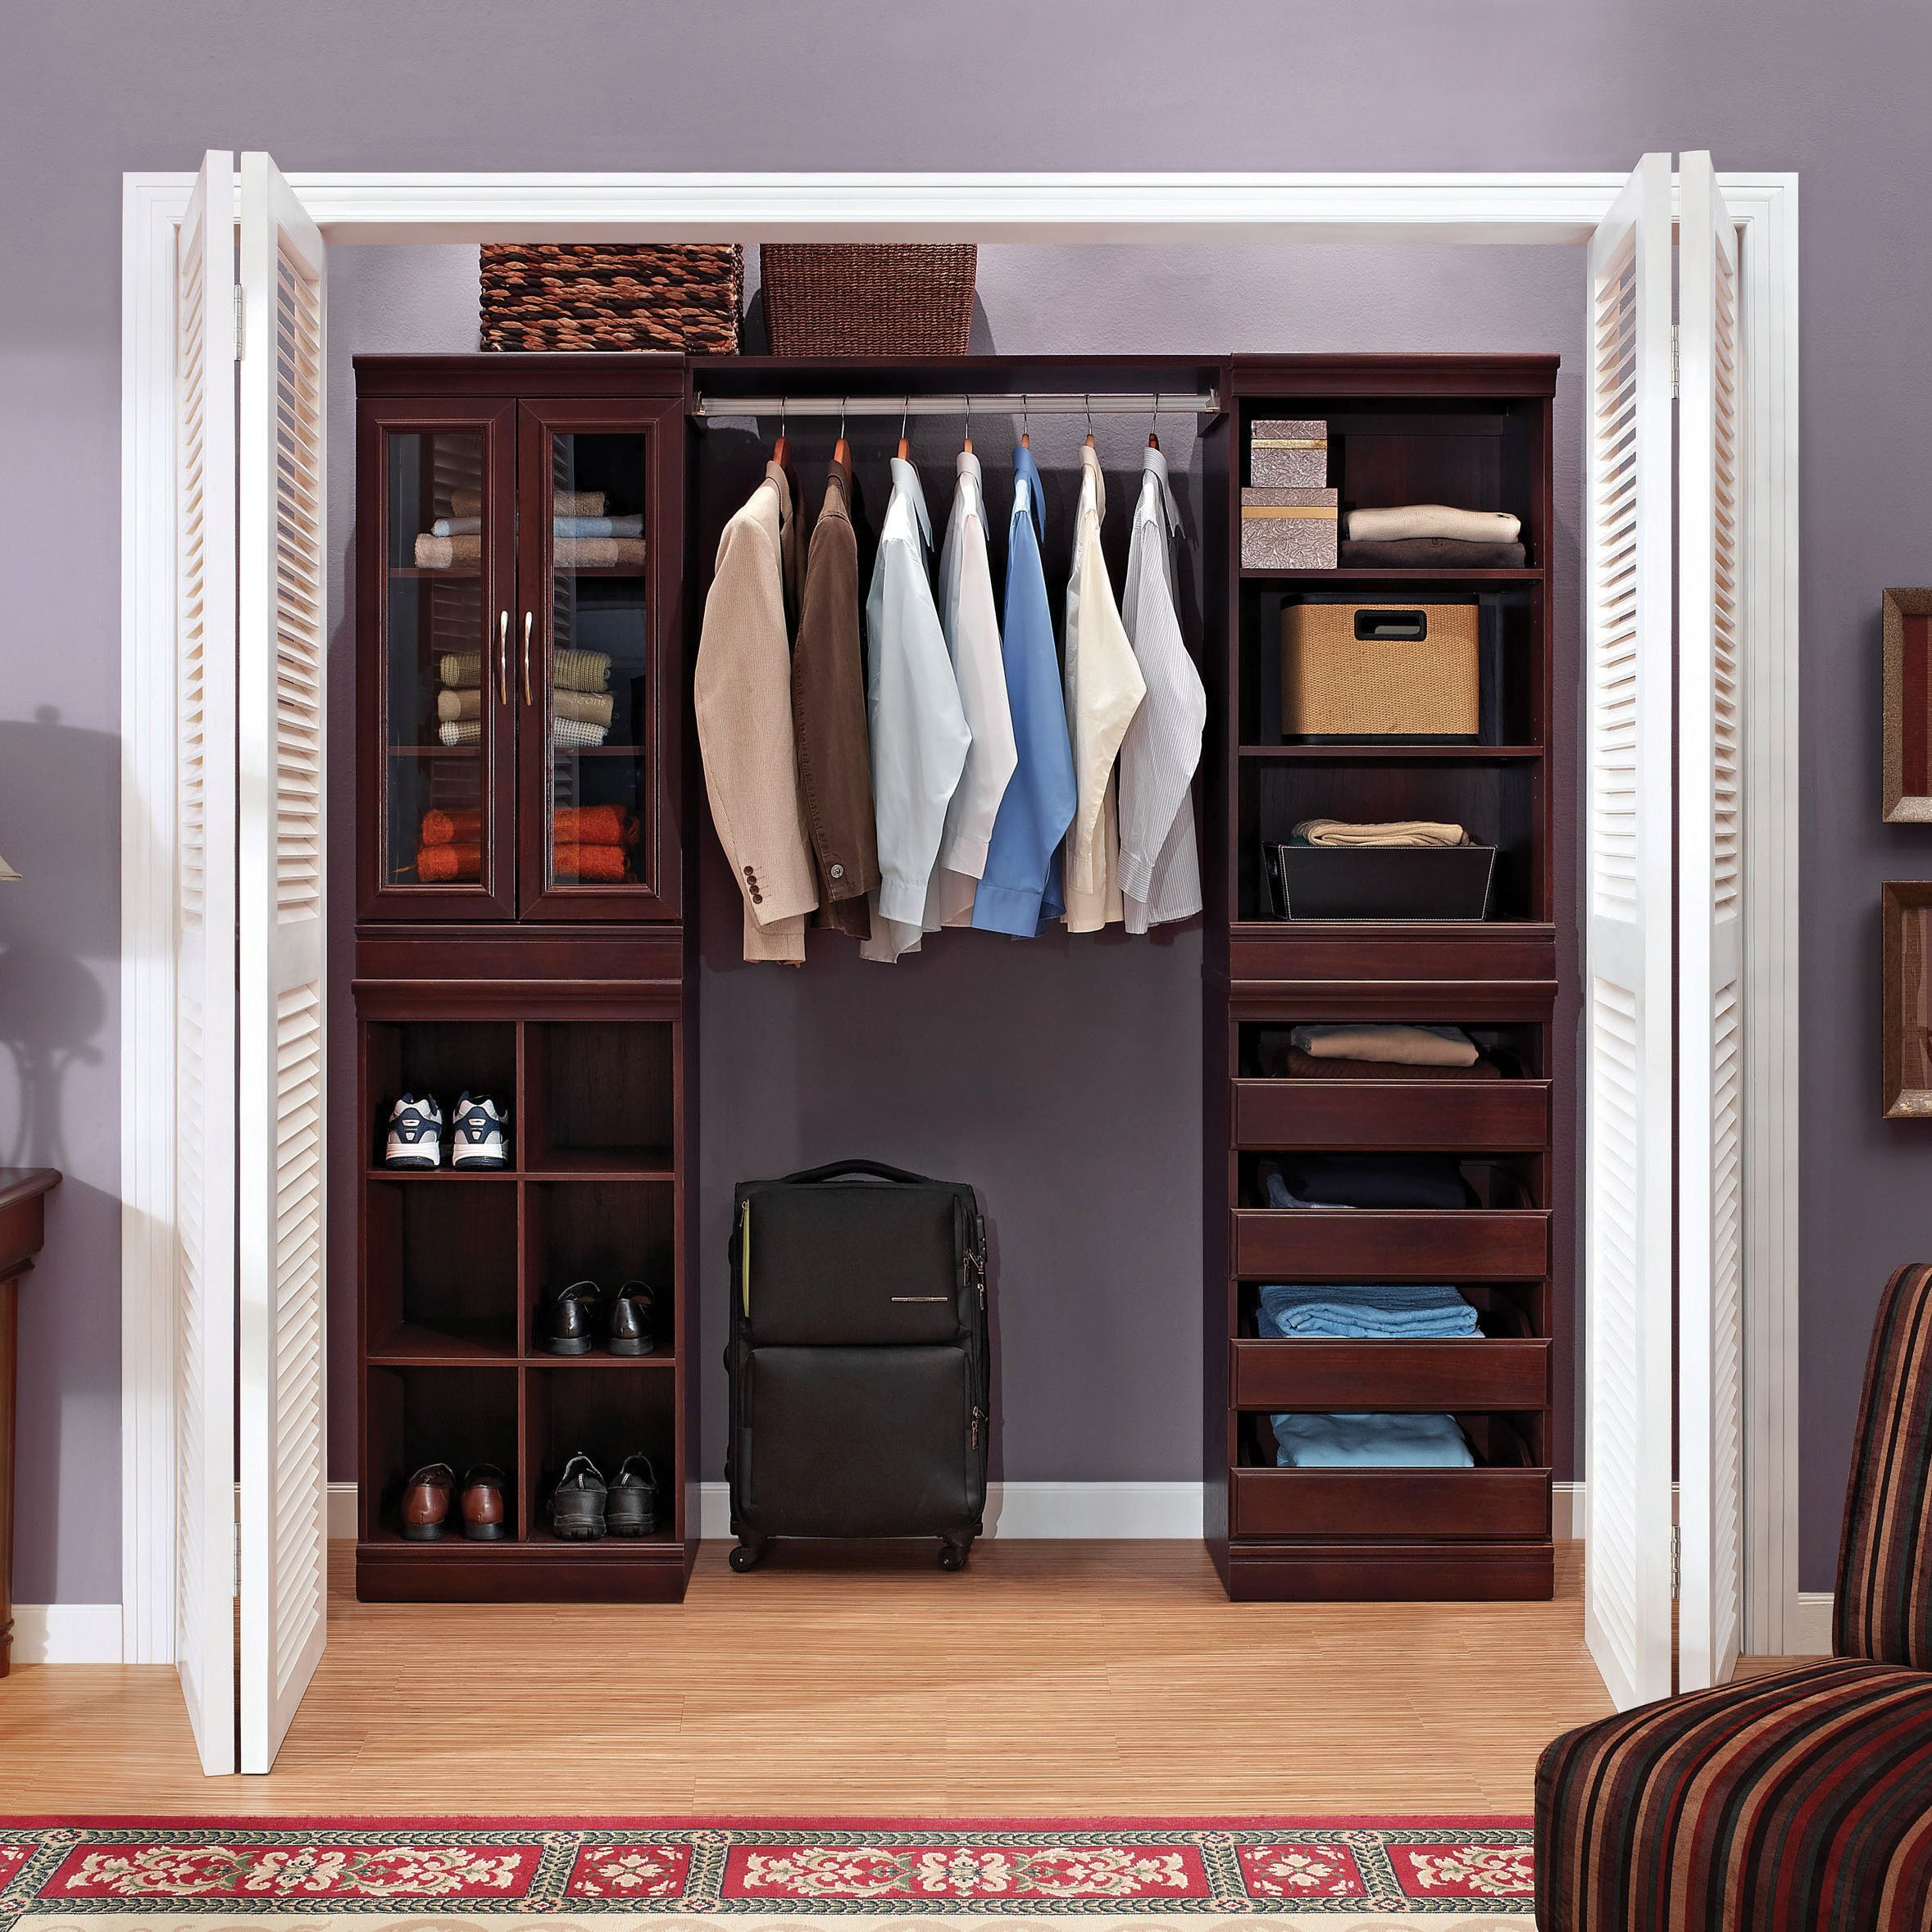 The Whalen Storage Closet Organization System Is An Ideal Solution For Personalizing Any Size